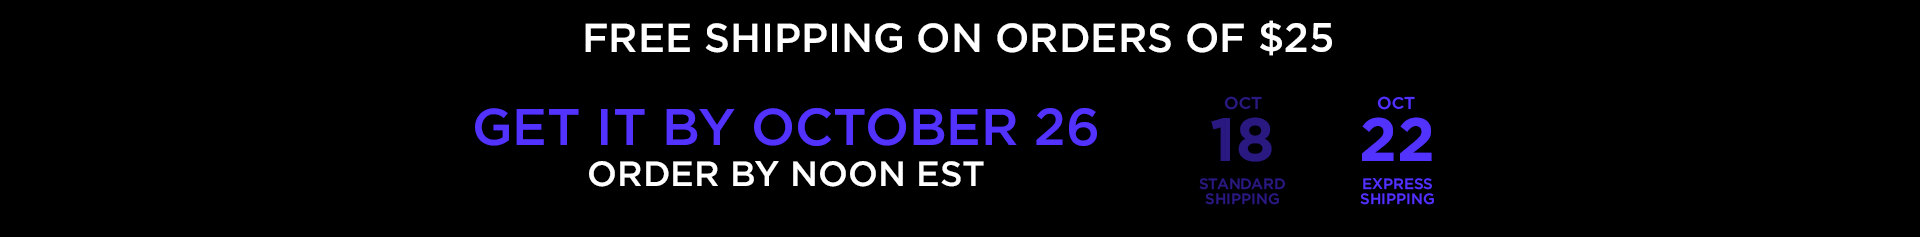 Free shipping on orders of $25. Get it by October 26. Order by noon est. Oct 18 standard shipping. October 22 express shipping.